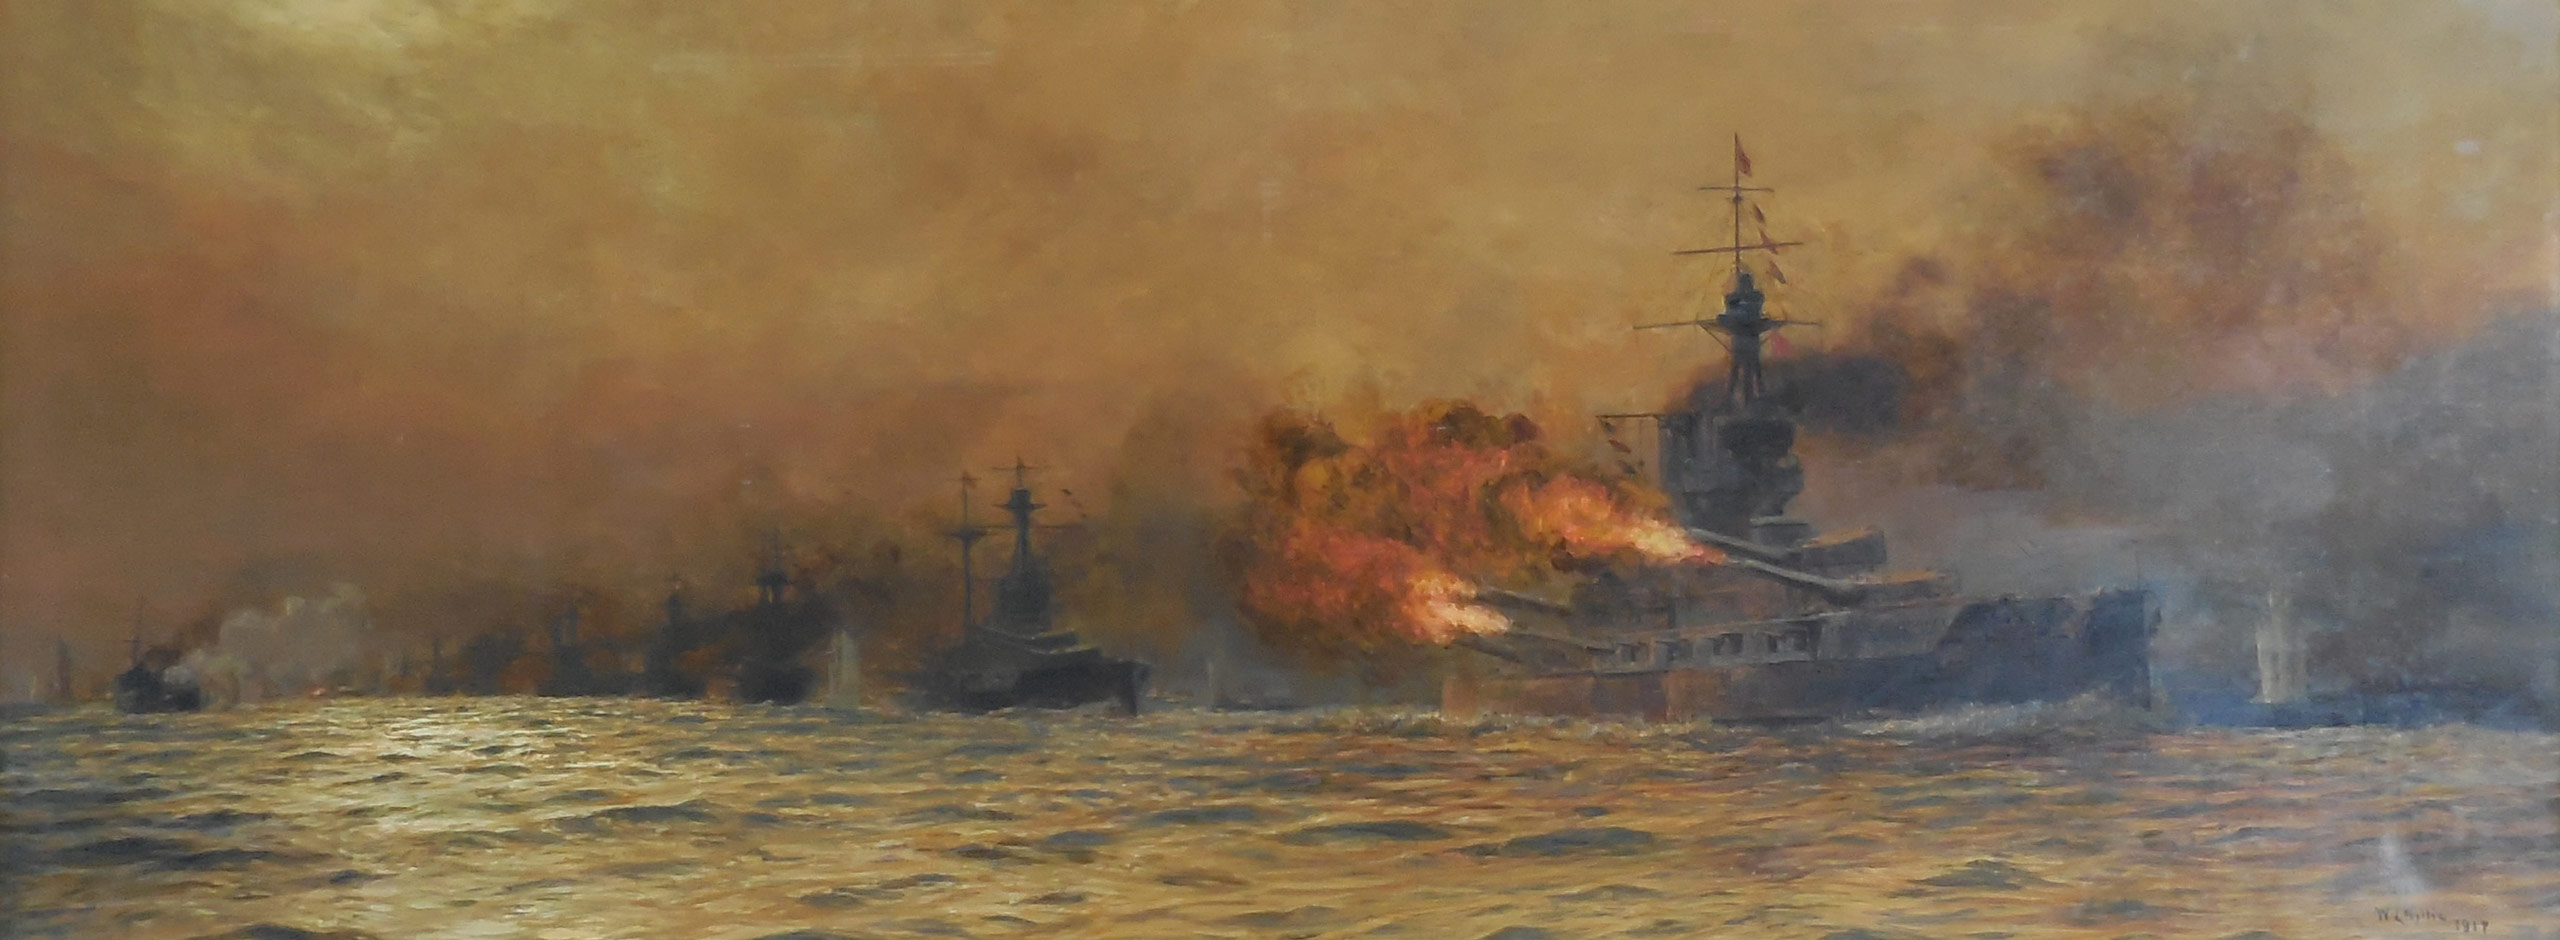 a history of the battle of jutland of world war i Battle of jutland german backstory commander of the german high seas fleet reinhard scheer returned to an old policy of attacking ships along the british cost while he was in a defensive.